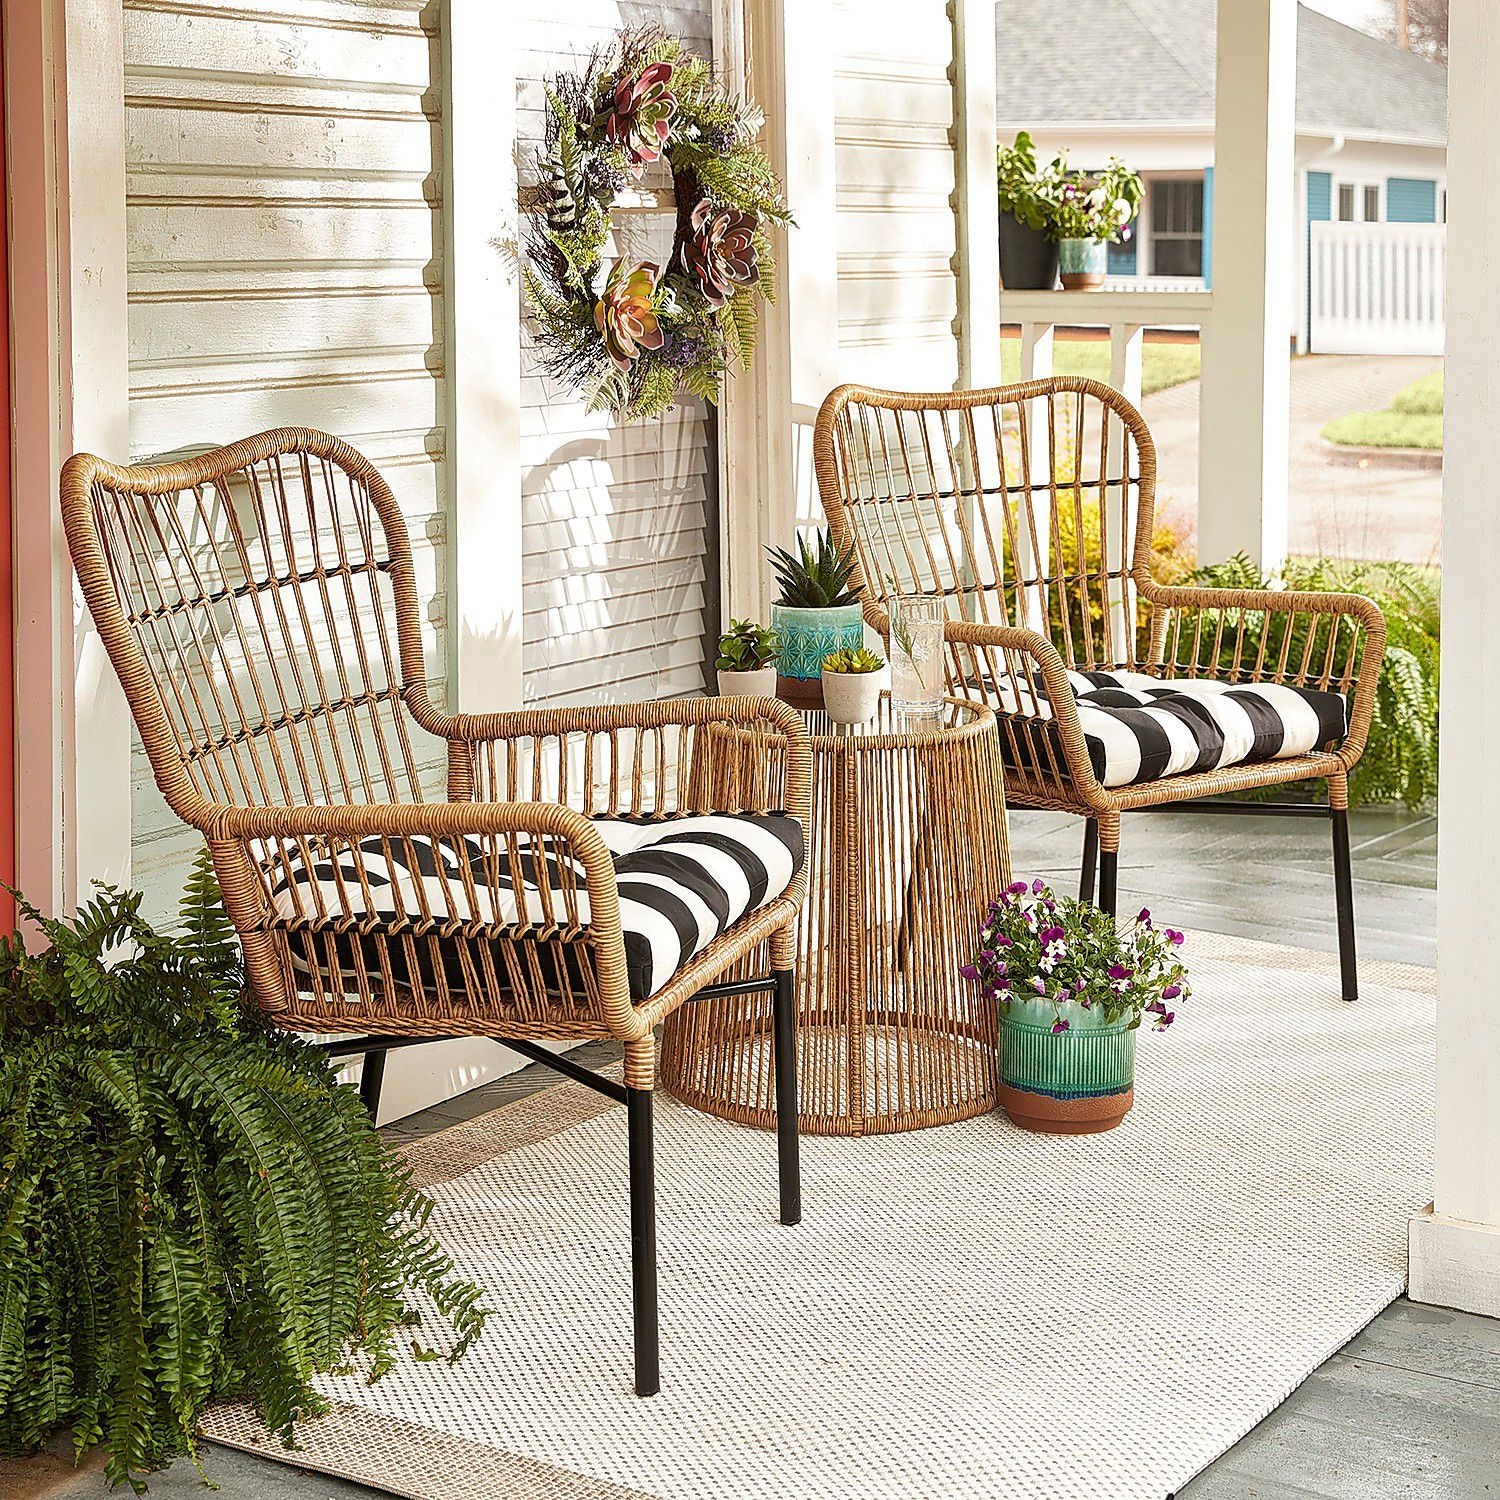 Sand Chat Chair Patio Decor Best Outdoor Furniture Decor